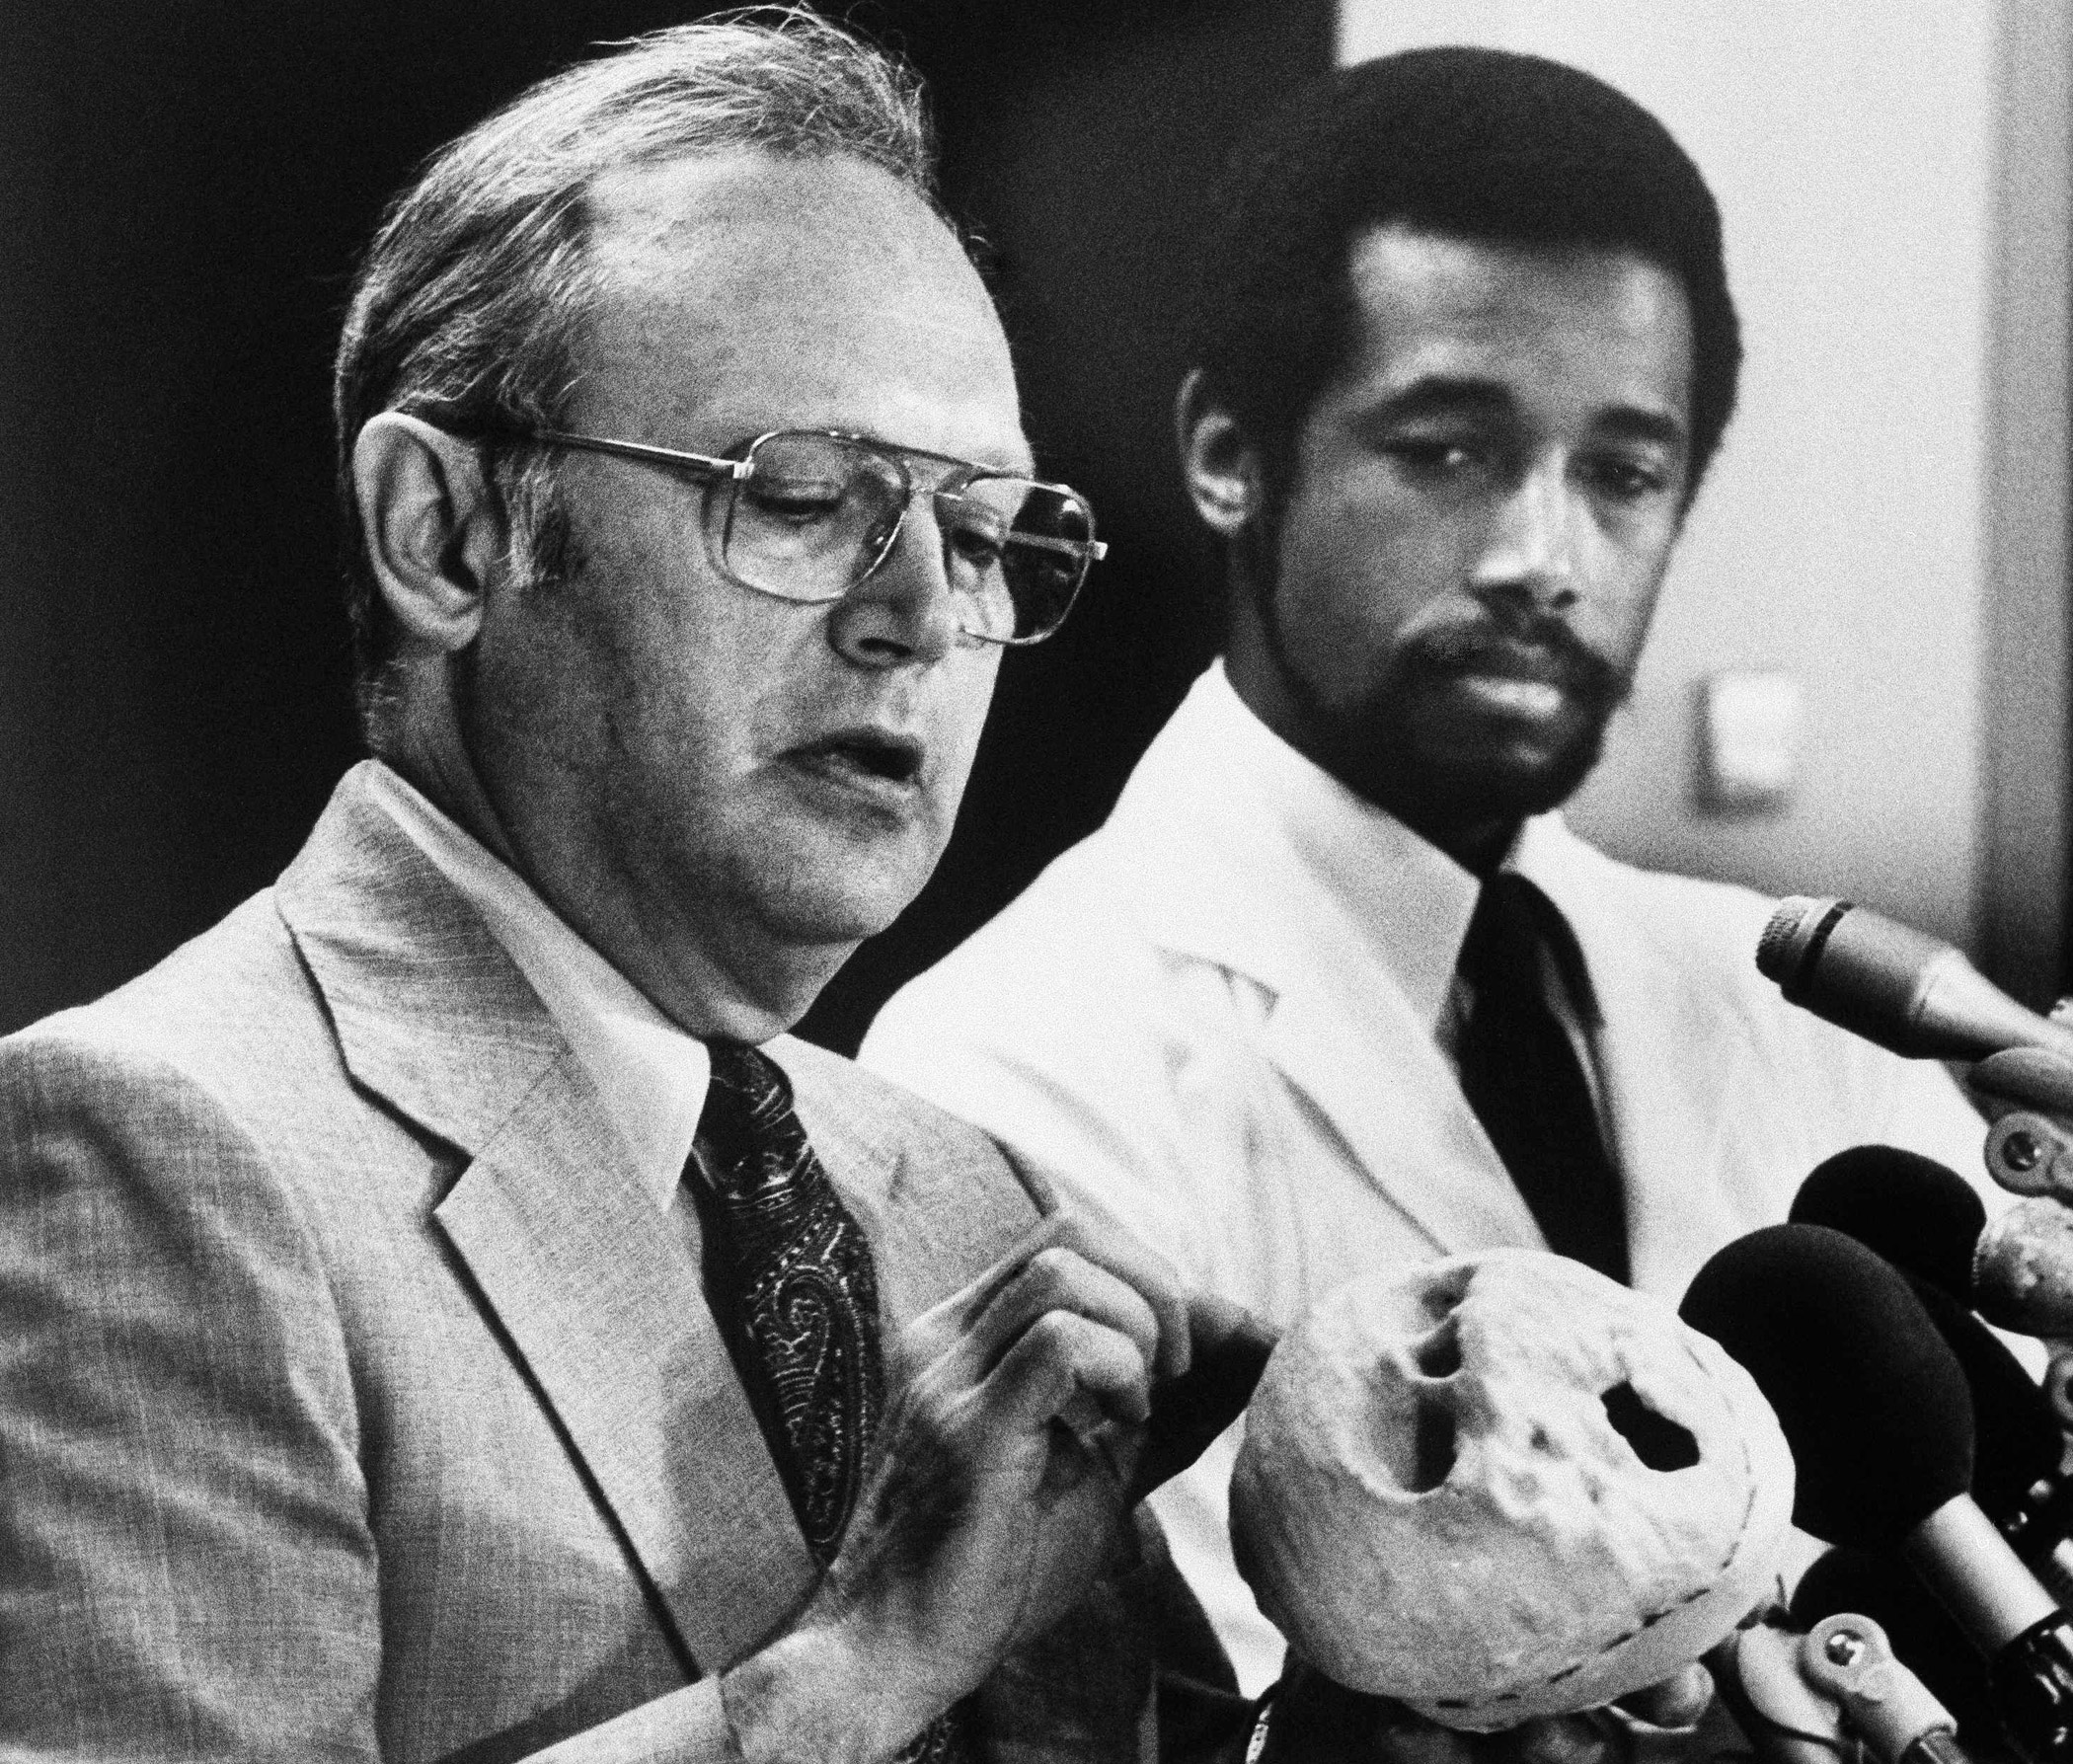 Dr. Donlin Long, director of neurosurgery, left, and Dr. Ben Carson director of pediatric neurosurgery at John Hopkins Hospital, with brain model of the Siamese twins separated in a 22-hour surgery at Hopkins, Sept. 7, 1987, in Baltimore.